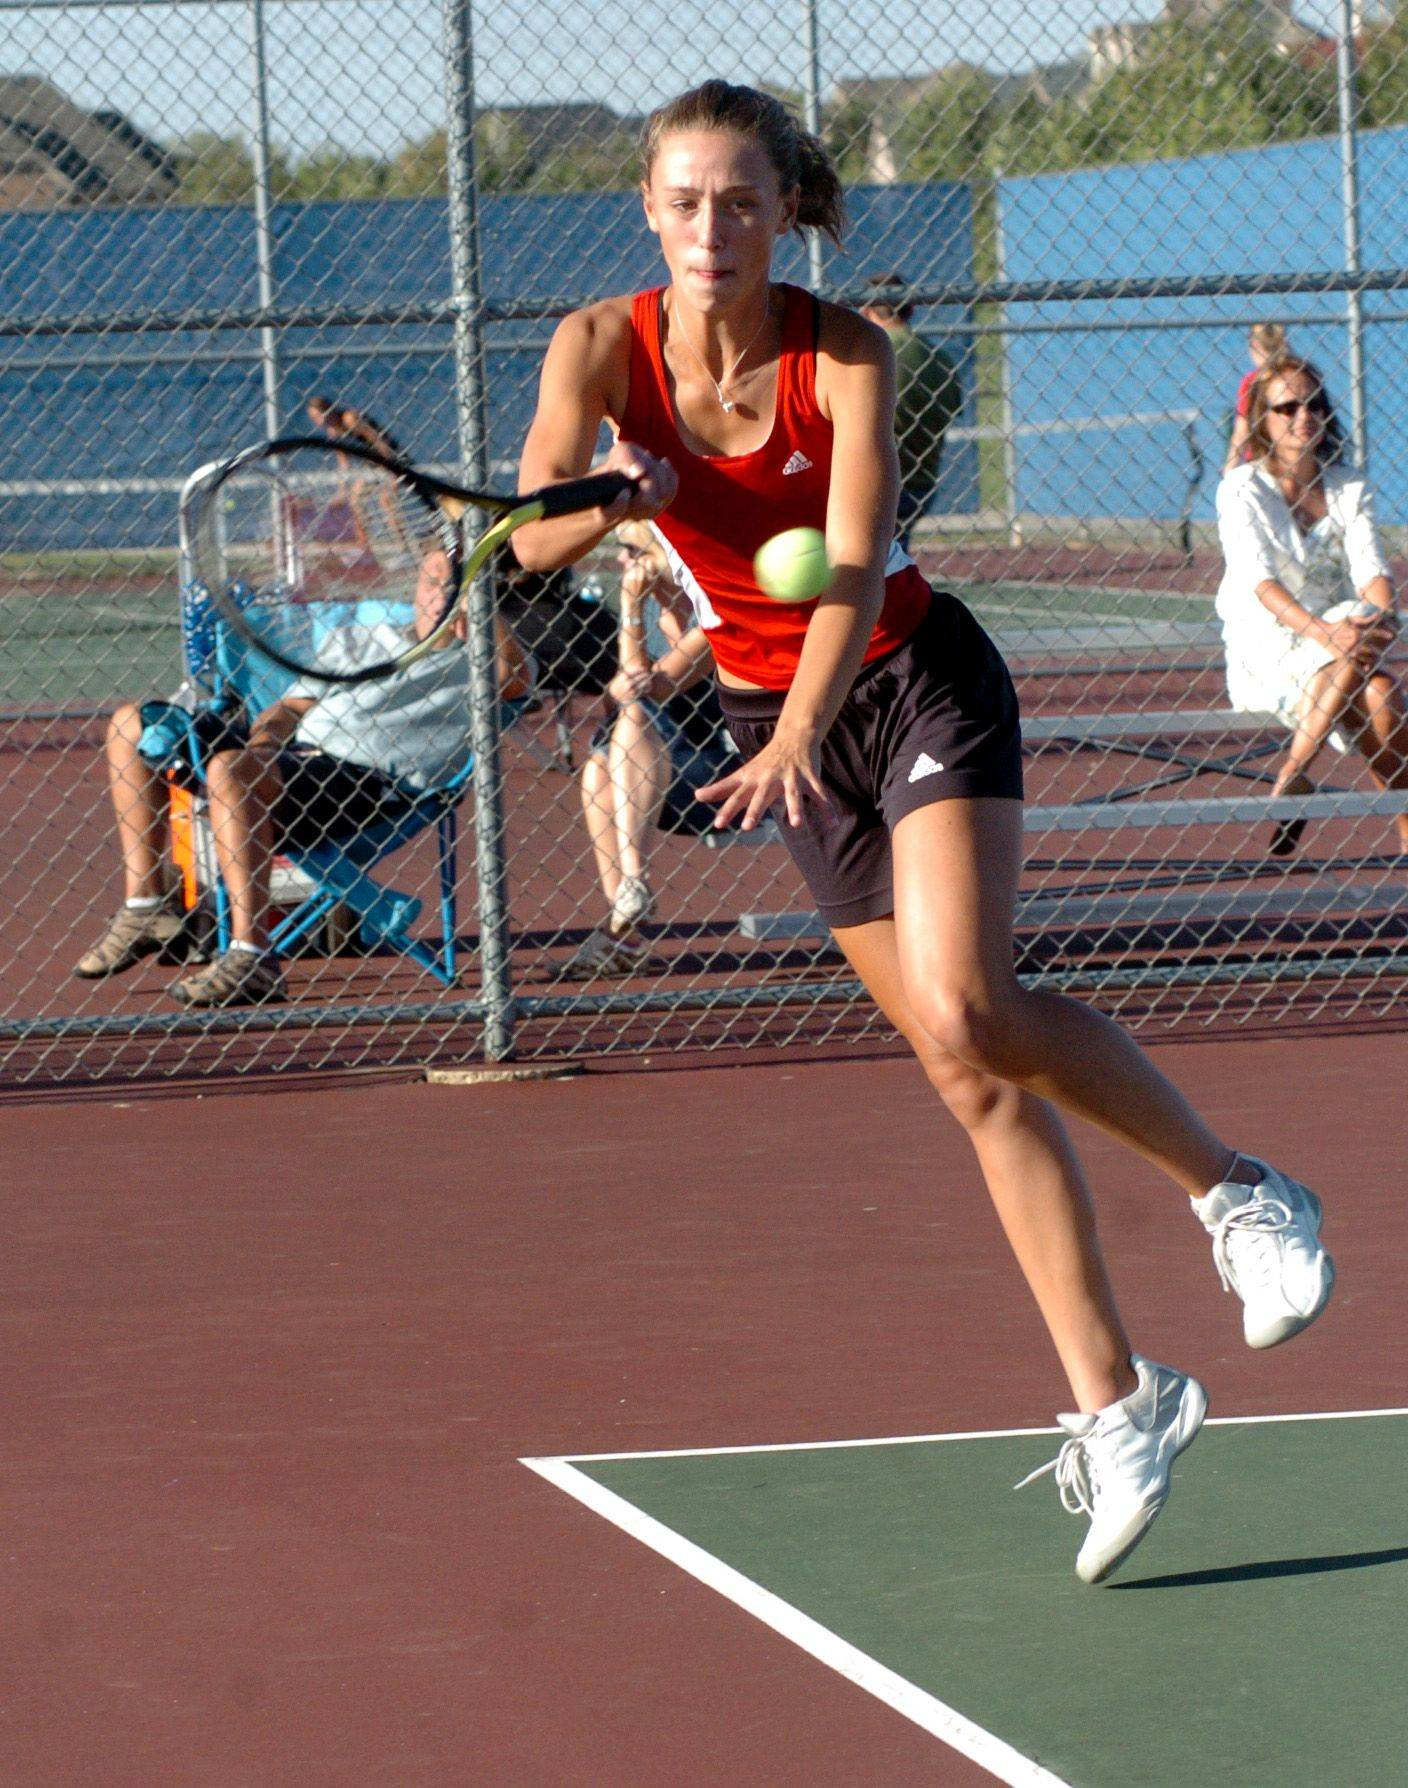 Kaitlin Mills is finishing her third season as part of the No. 1 doubles team at Batavia.